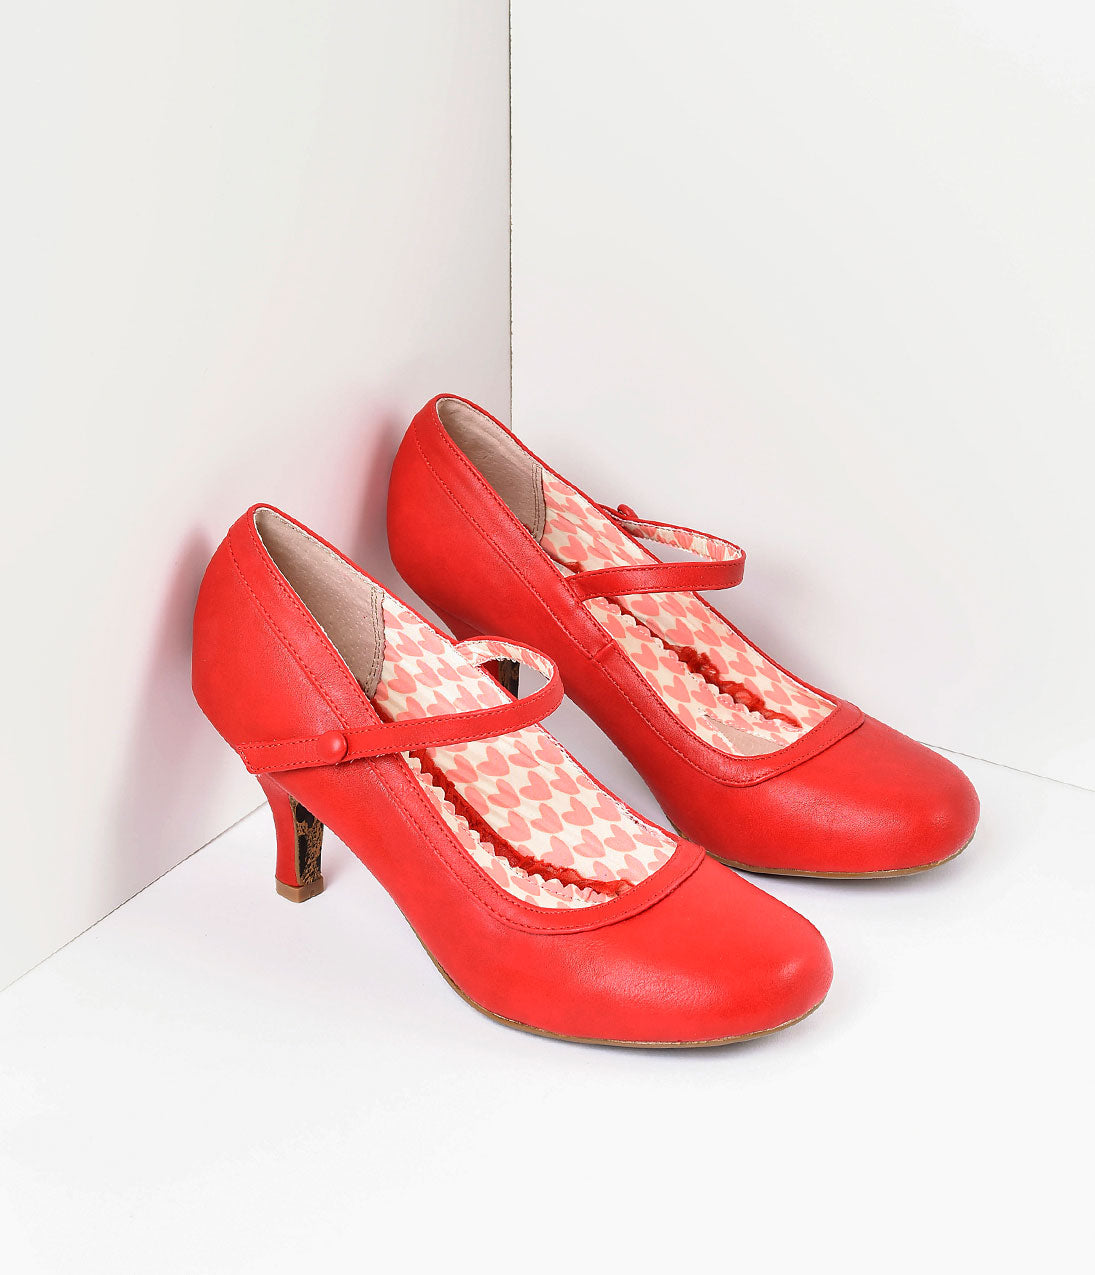 1940s Style Shoes, 40s Shoes Bettie Page Cherry Red Leatherette Bettie Retro Mary Jane Heels $68.00 AT vintagedancer.com